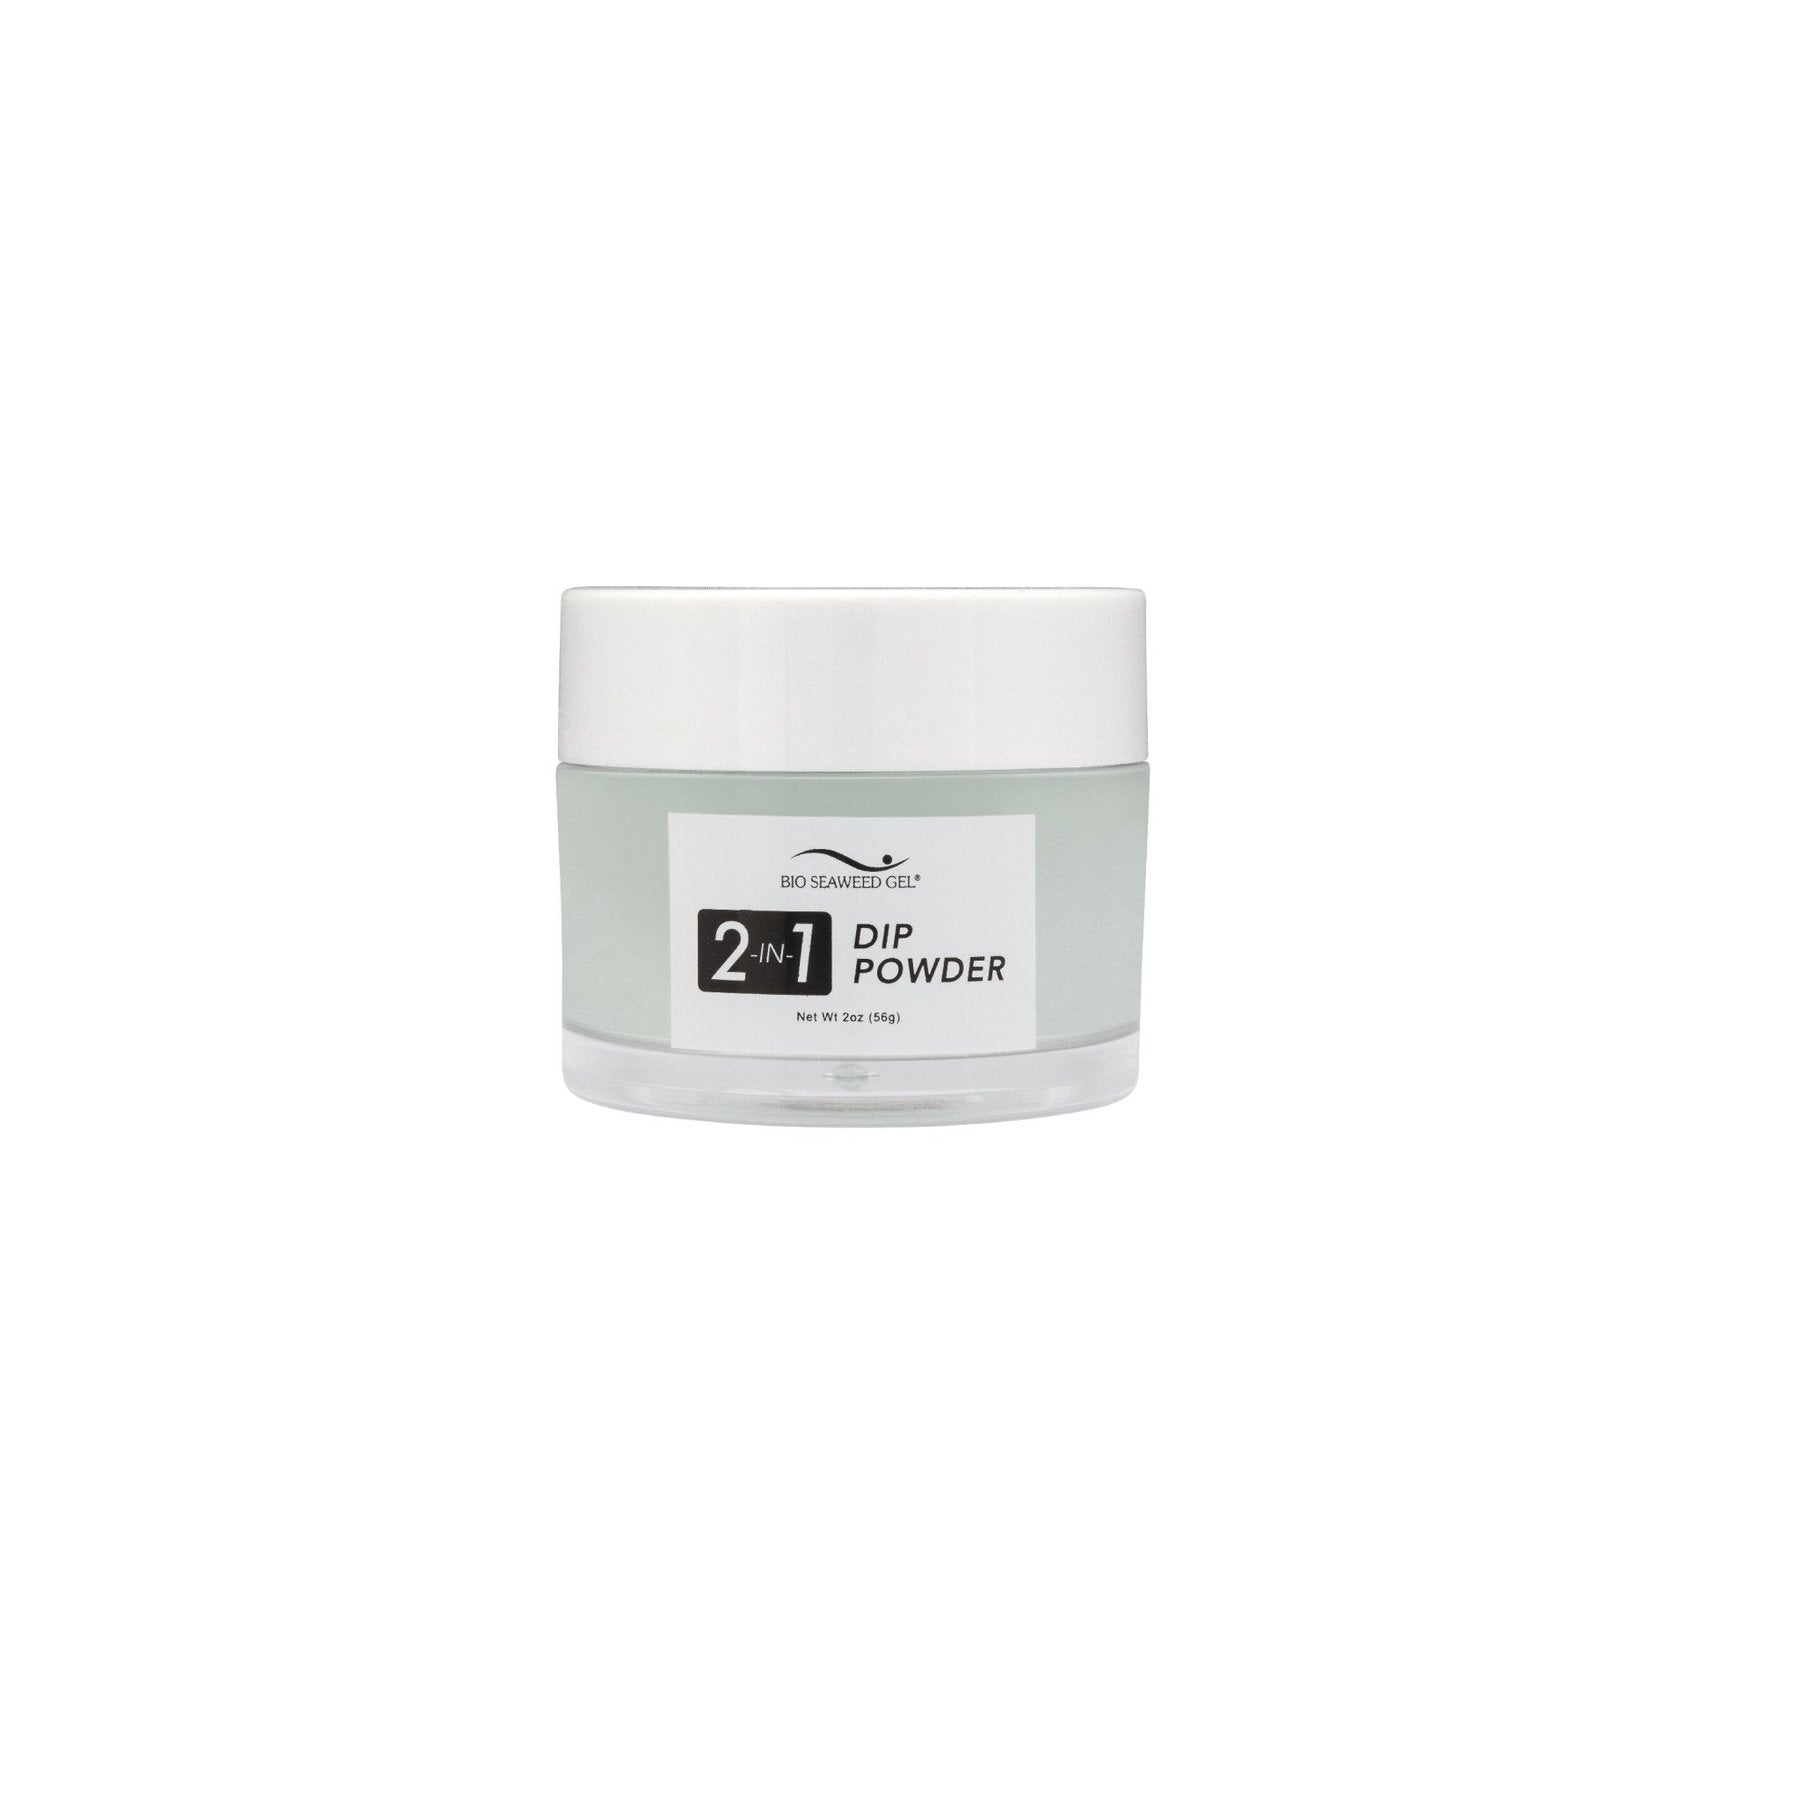 64 LILYPAD | Bio Seaweed Gel® Dip Powder System - CM Nails & Beauty Supply